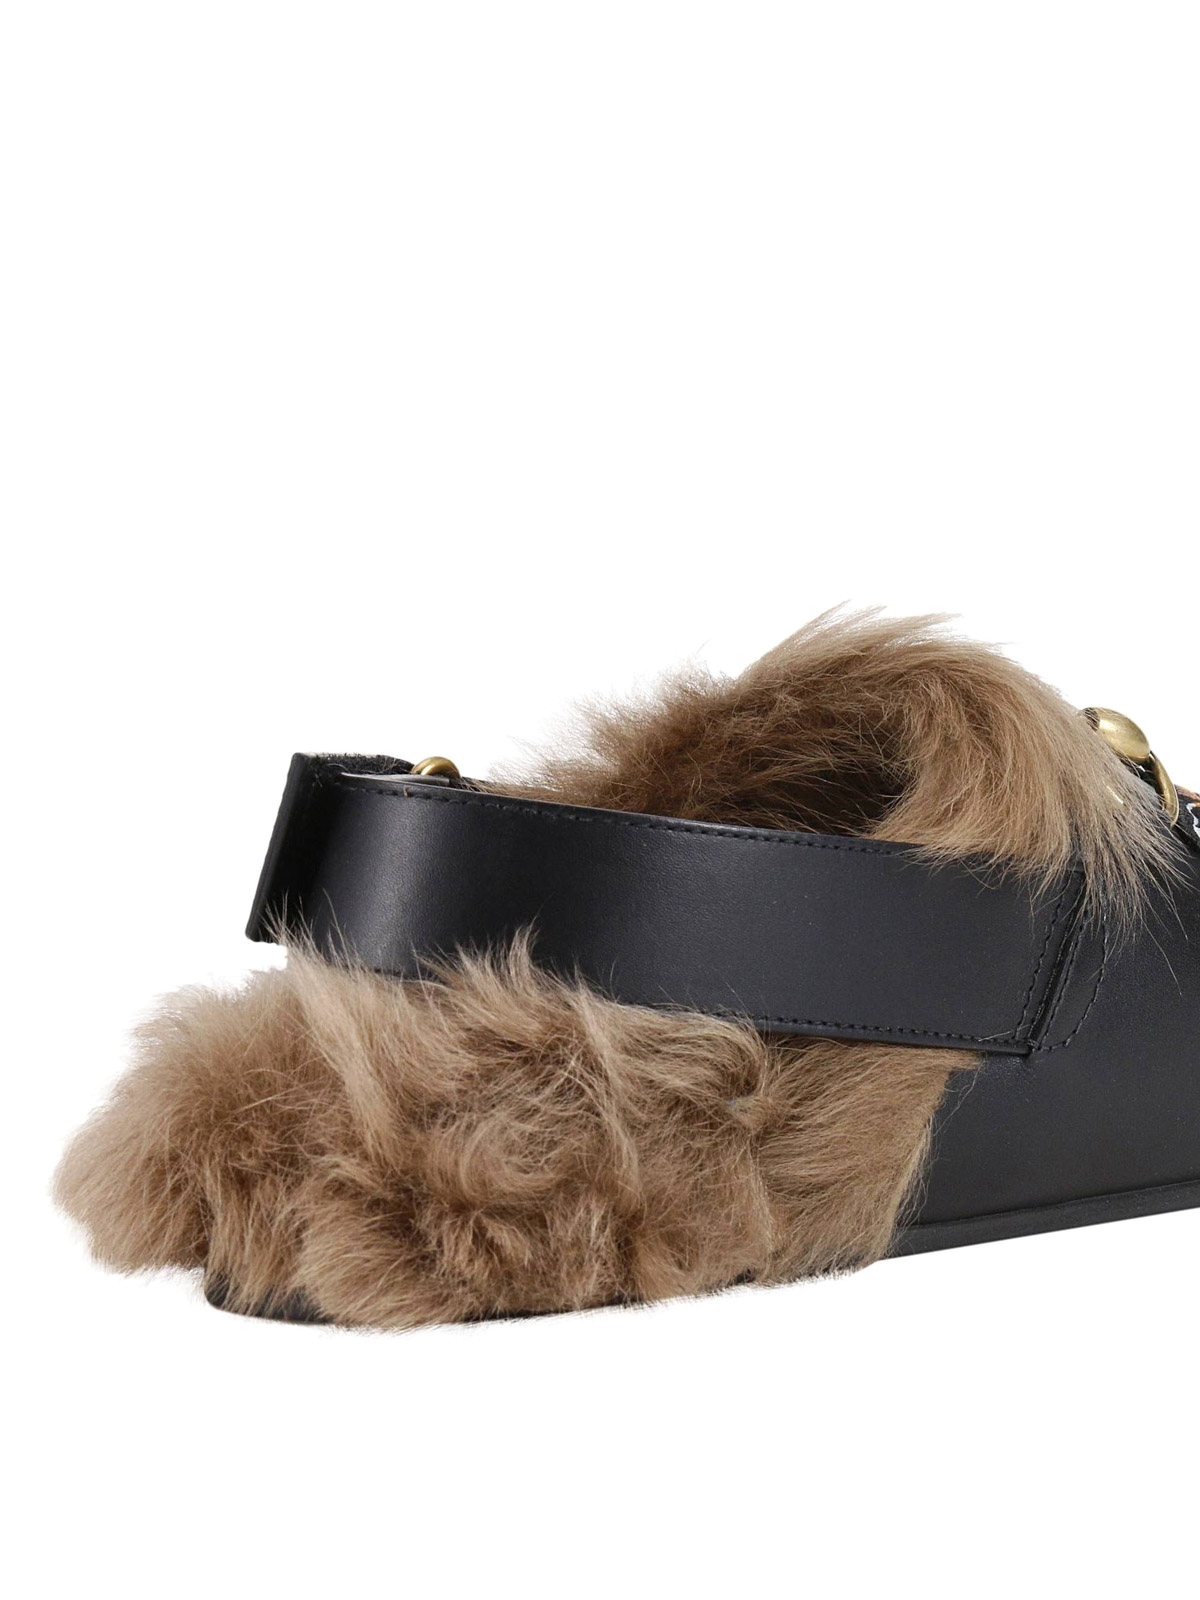 769a620bd52d Gucci - Angry cat fur trim leather slippers - mules shoes - 473494 ...